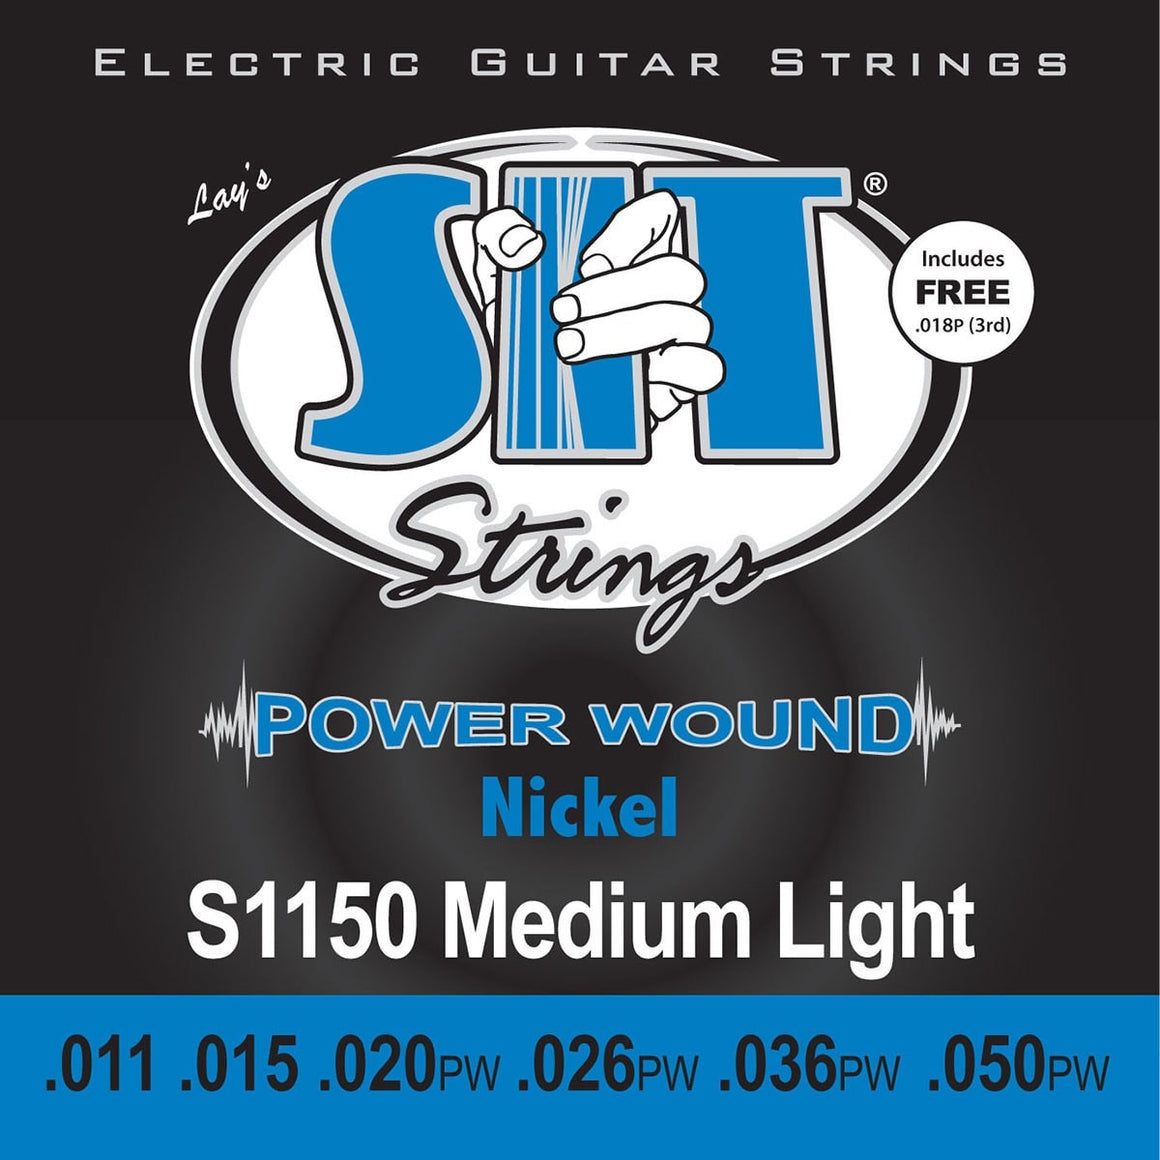 SIT Strings Electric Guitar Strings SIT Power Wound Nickel Medium Light S1150 Electric Guitar Strings